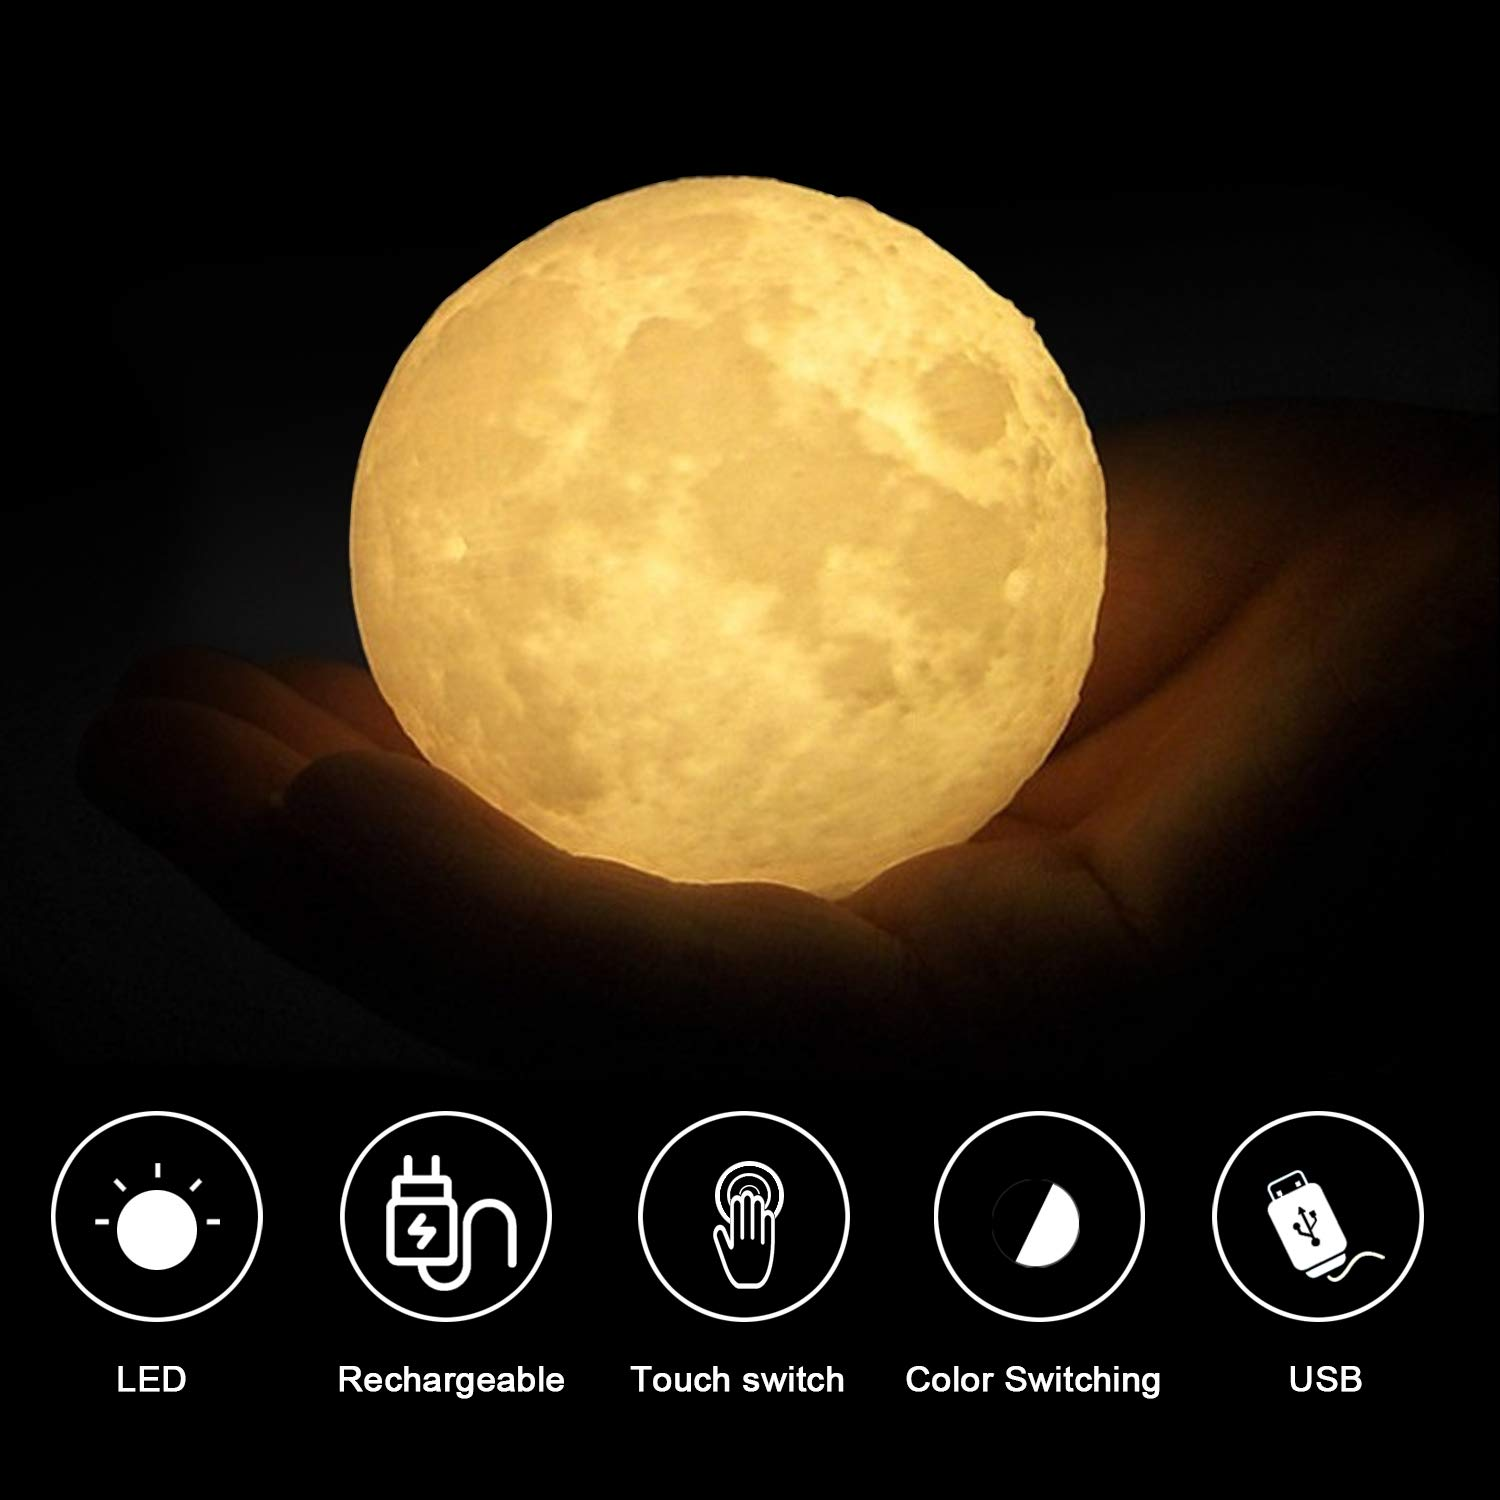 Amurgo Night Light,LED 3D Printing Moon Lamp,Baby Night Light Touch Control Warm and Cool Brightness with USB Charging for Hallway, Bathroom, Bedroom, Kitchen,Living Room